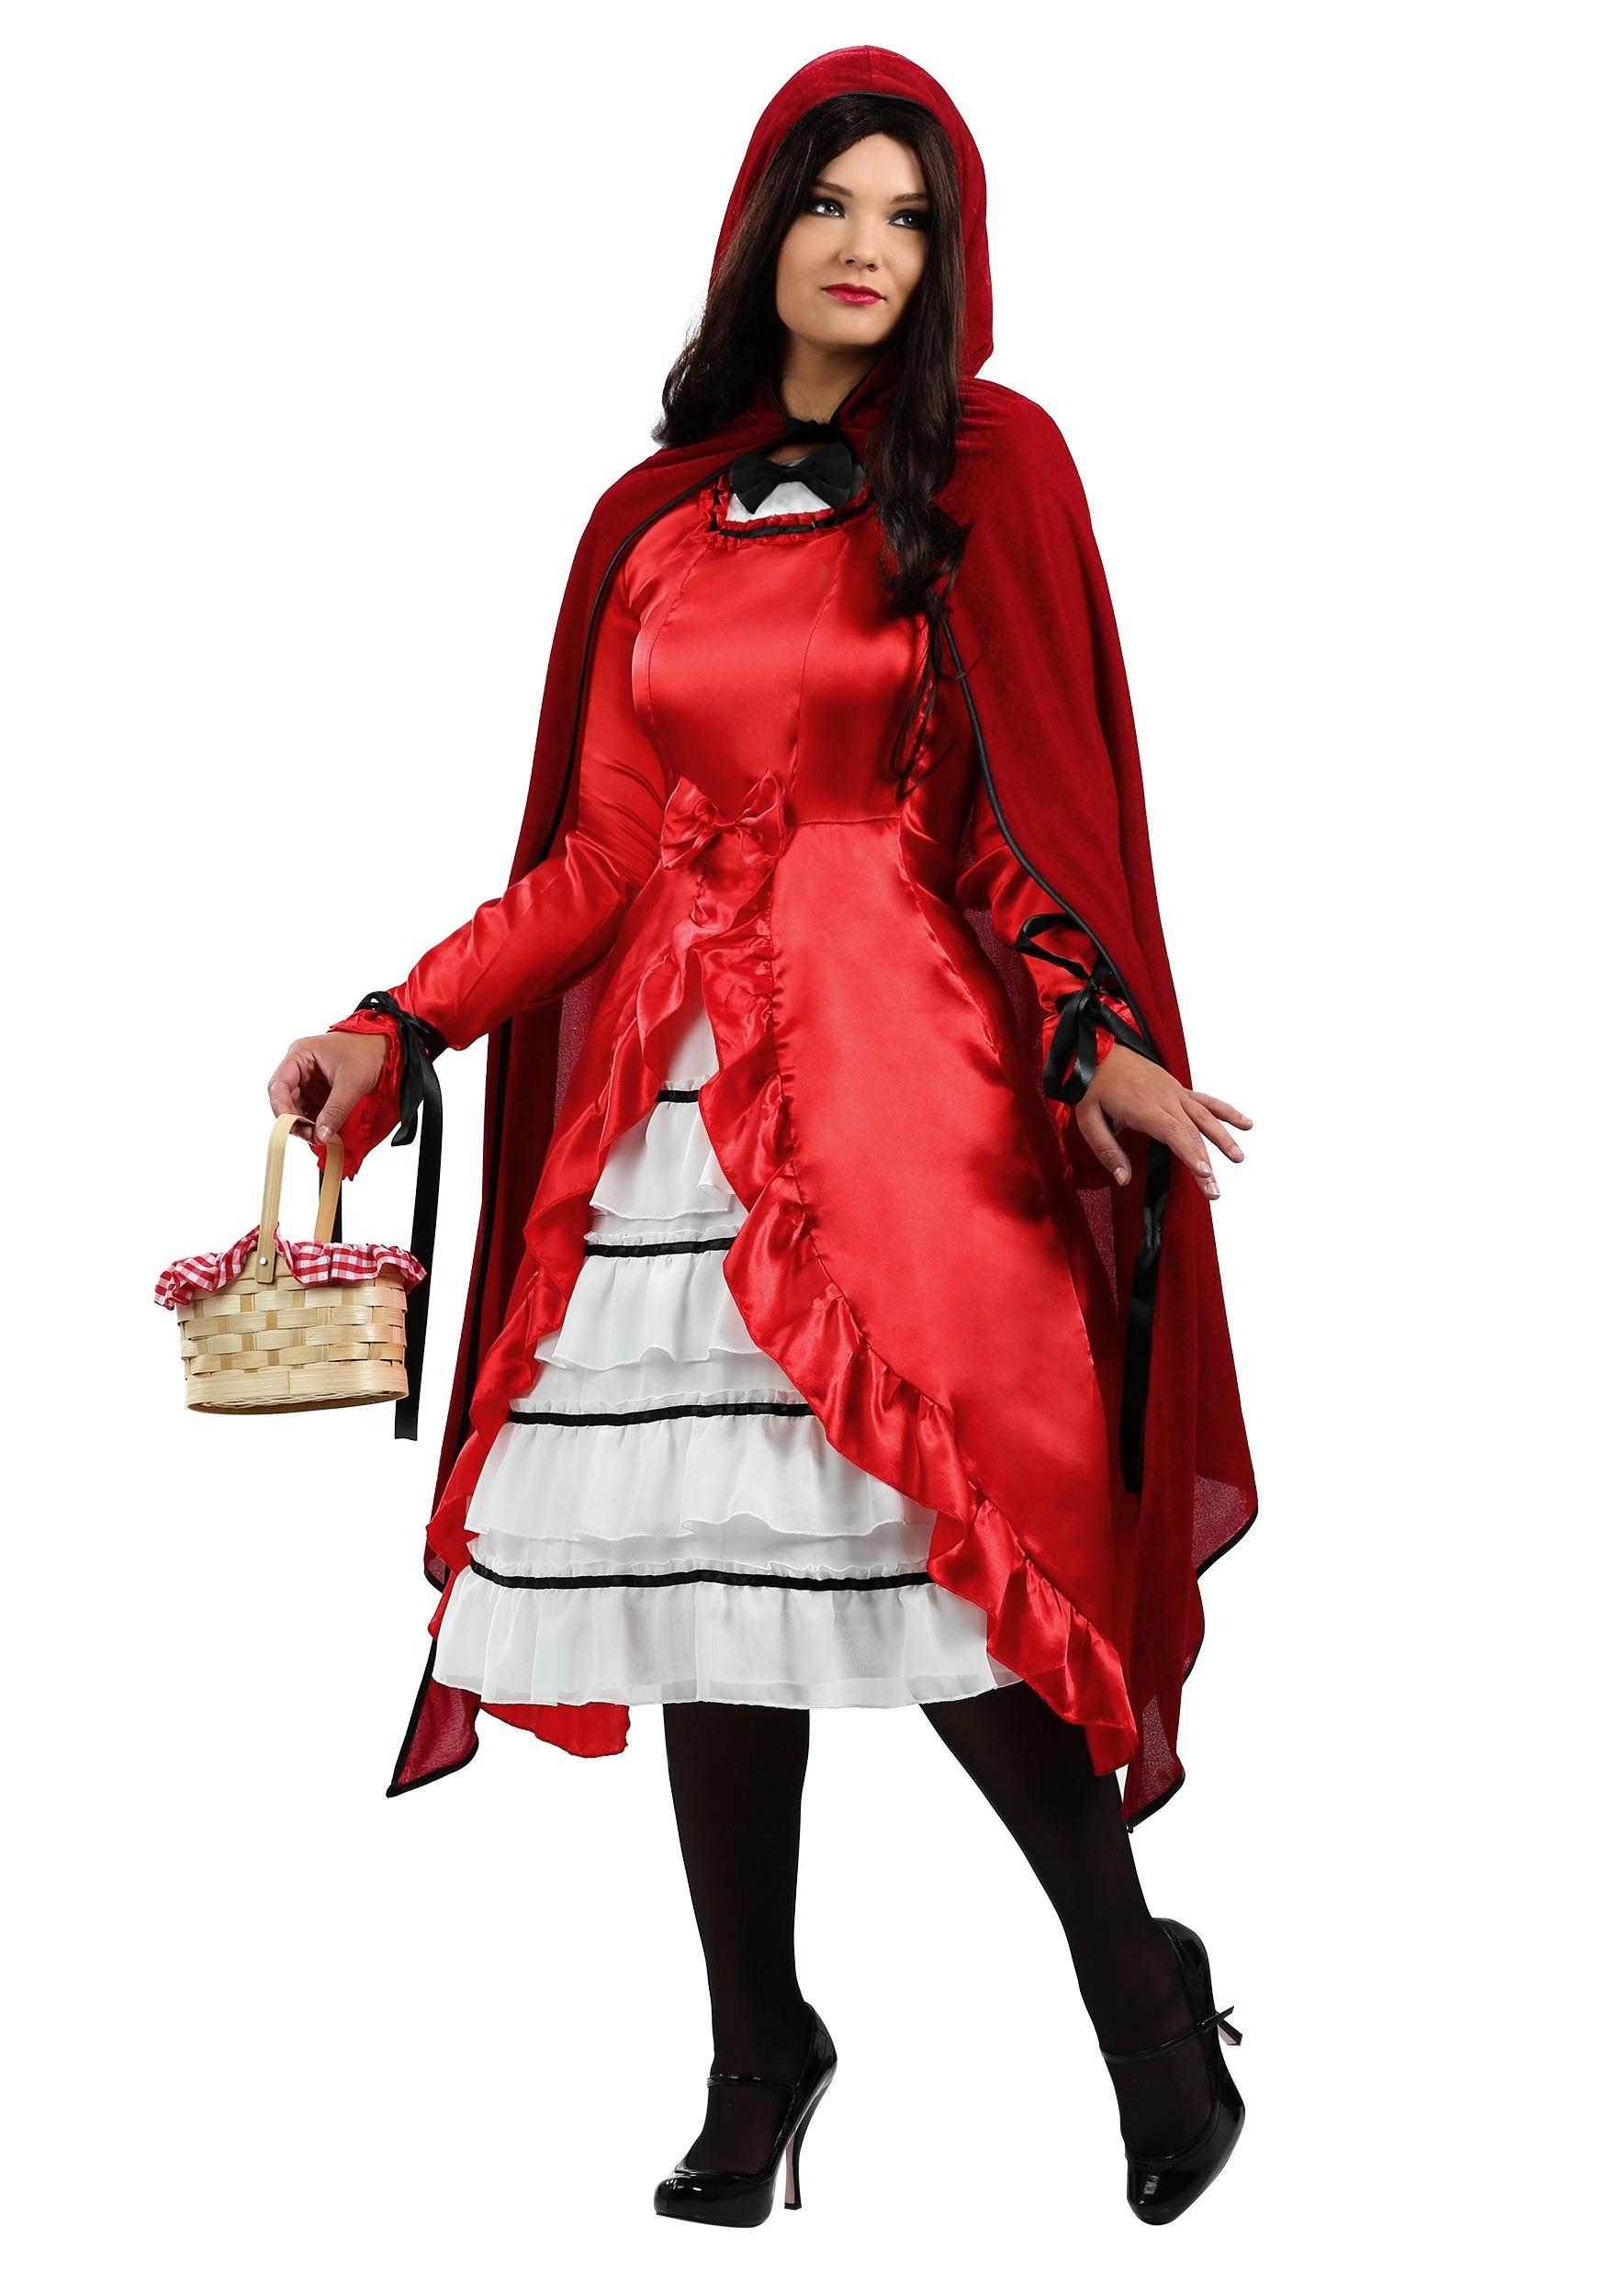 Plus Size Fairytale Red Riding Hood Costume  sc 1 st  Halloween Costumes & Plus Size Fairytale Red Riding Hood Costume 1X 2X 3X 4X 5X